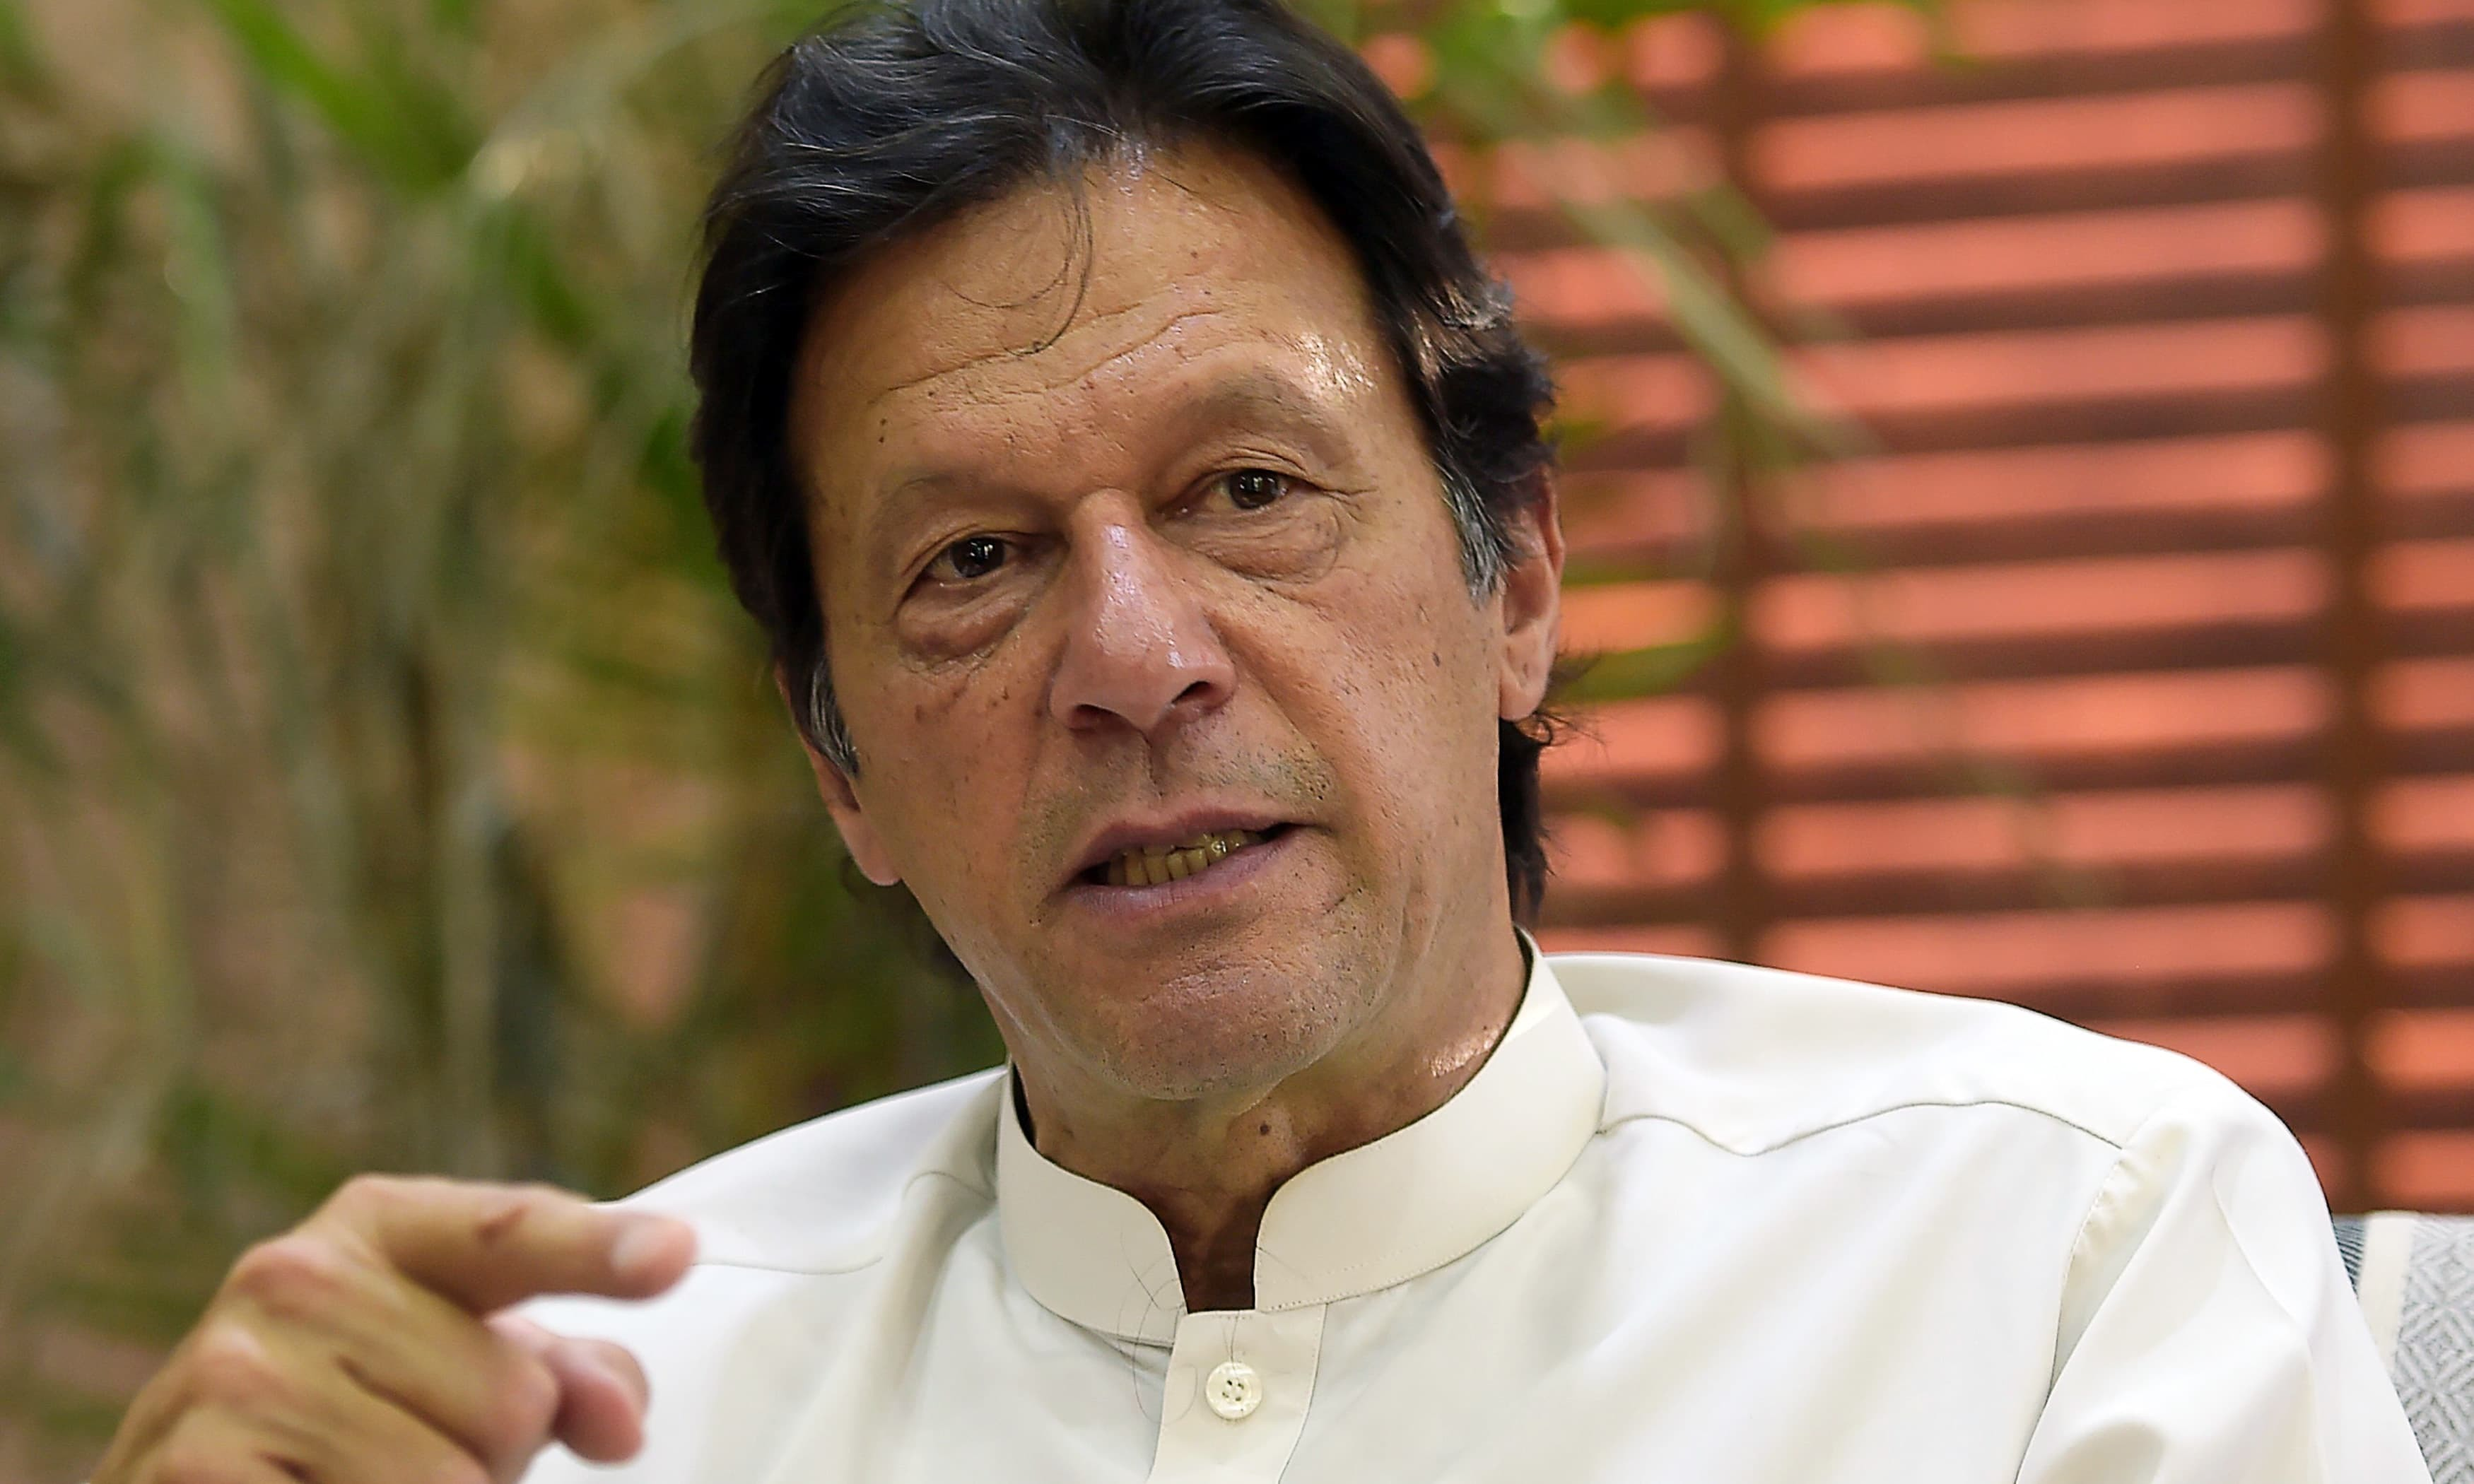 Irked by procedural and institutional delays, Prime Minister Imran Khan on Wednesday ordered immediate implementation of subsidised electricity tariff for export industry to ensure predictability and business confidence. — AFP/File